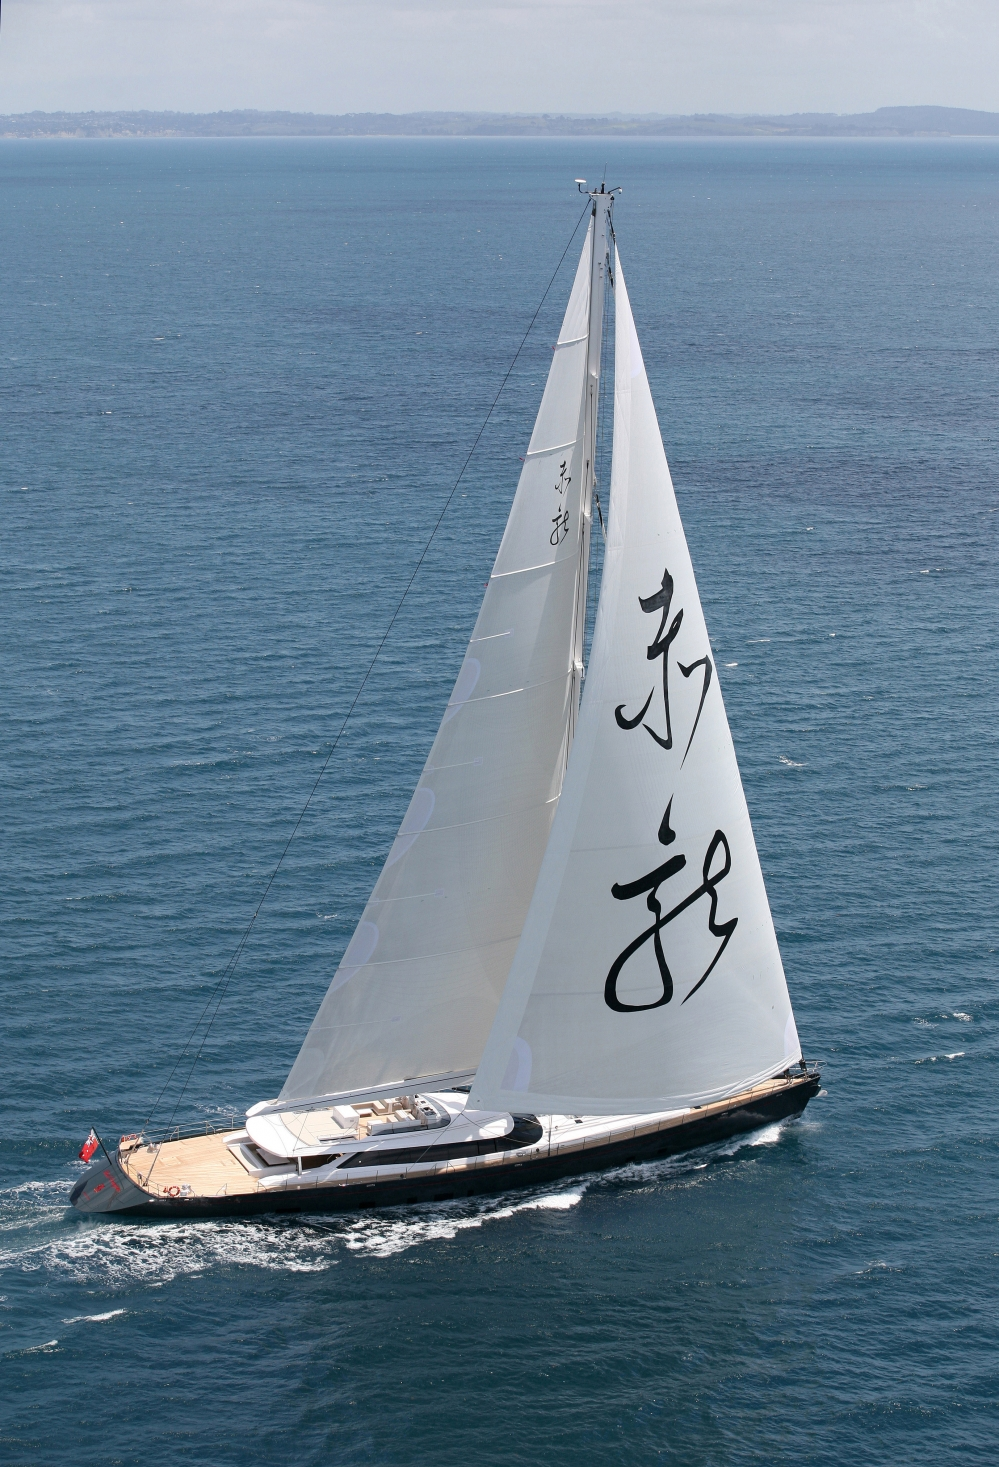 Yacht Red Dragon Image Courtesy Of Millenium Cup New Zealand